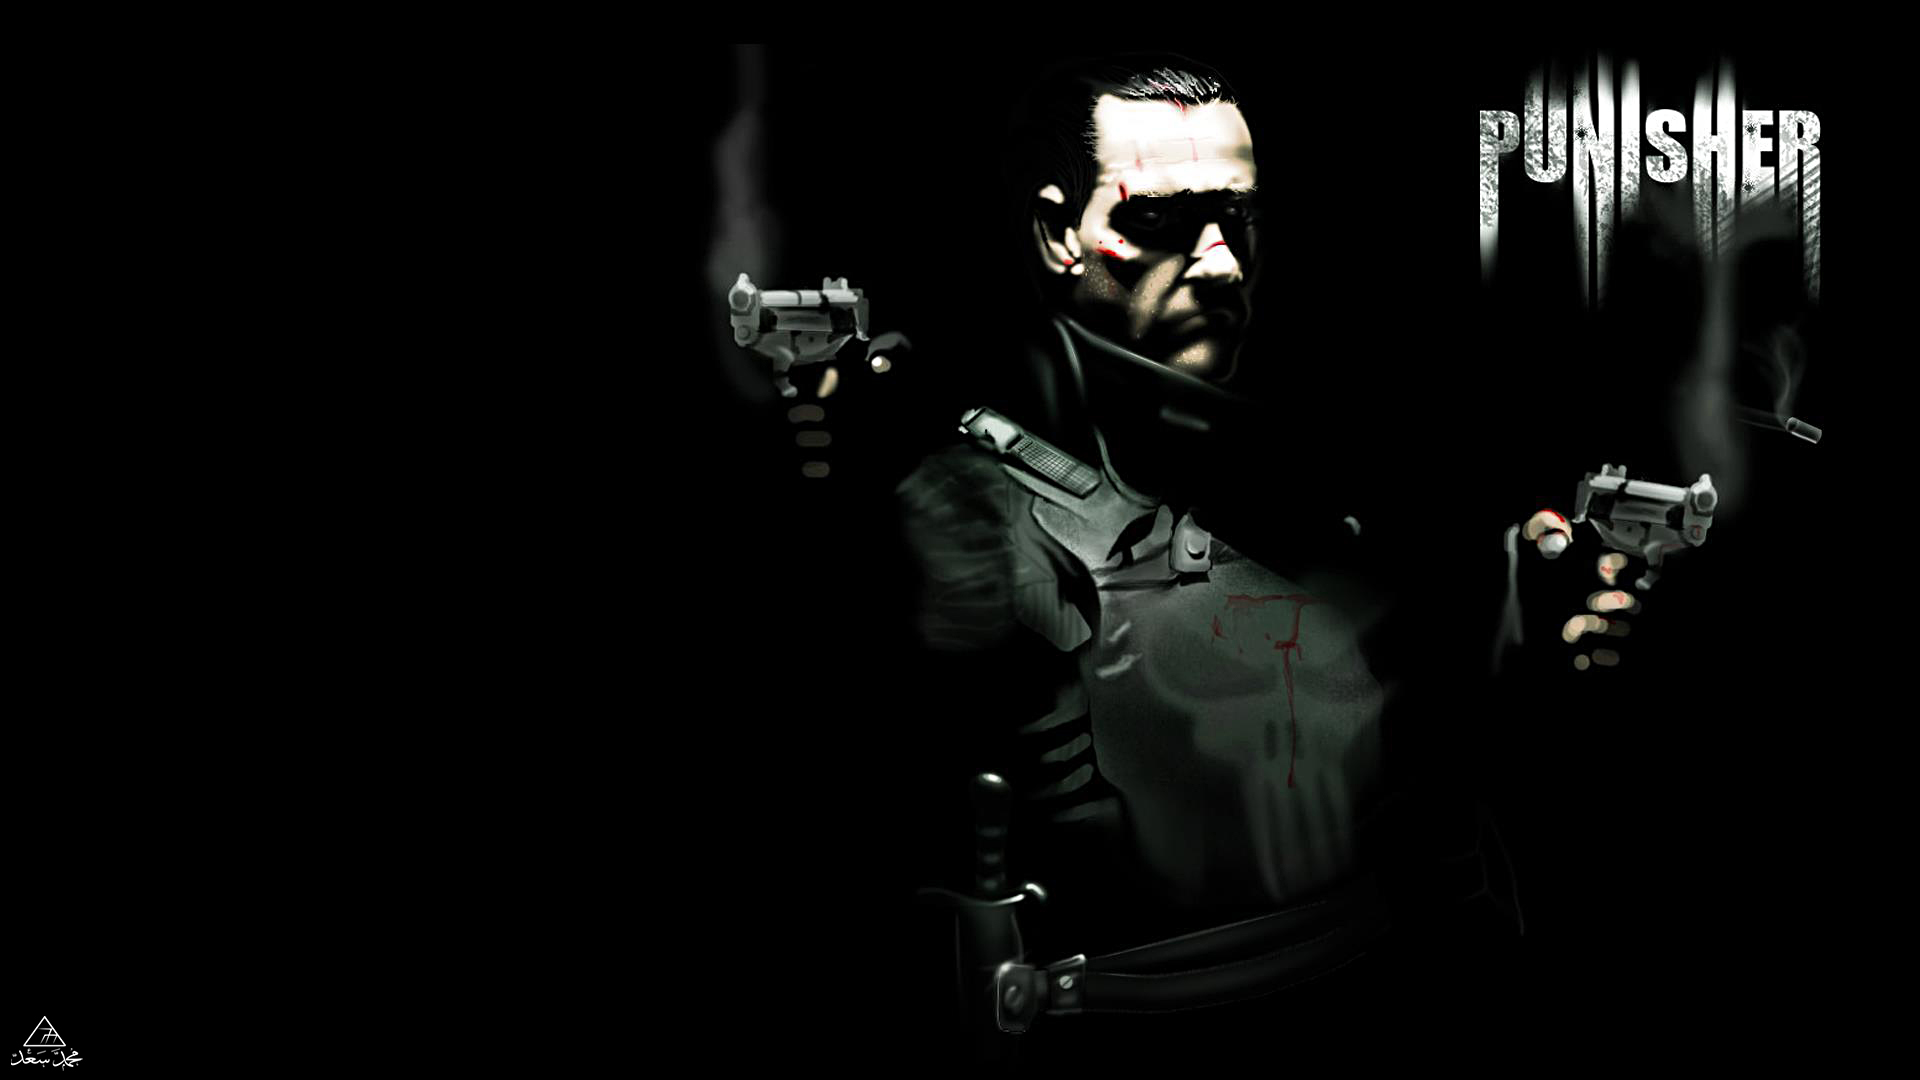 The Punisher HD Wallpapers for desktop download 1920x1080